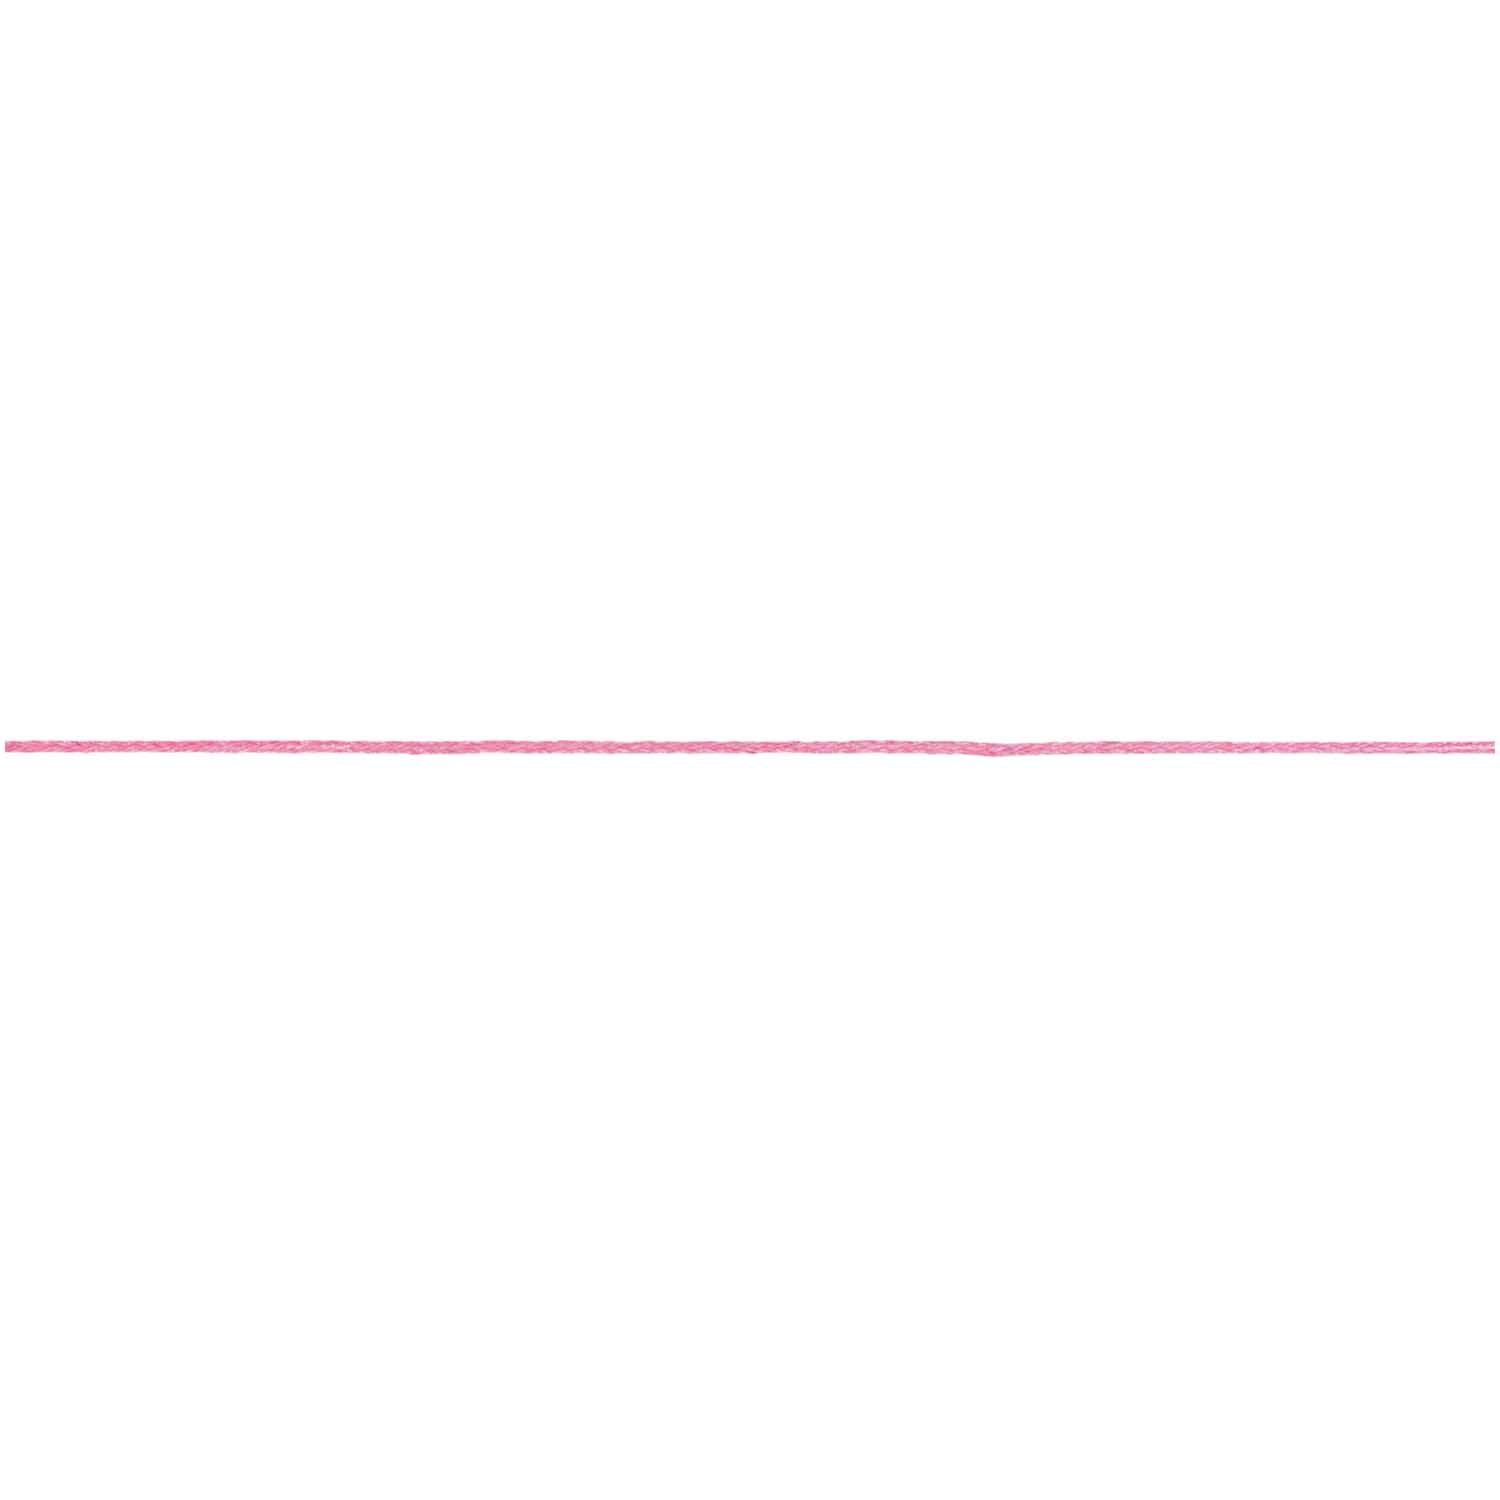 Rico NAY COTTON TAPE, PINK 1MM X 5M